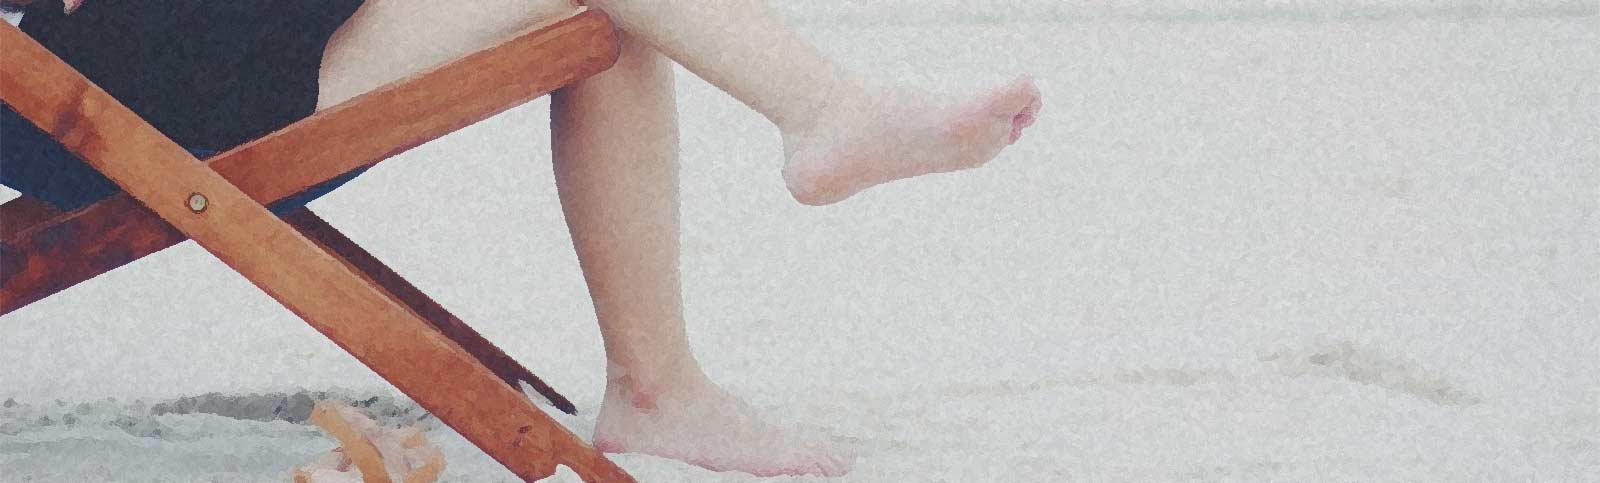 Most Common Diseases that Can Affect Your Feet and Toenails